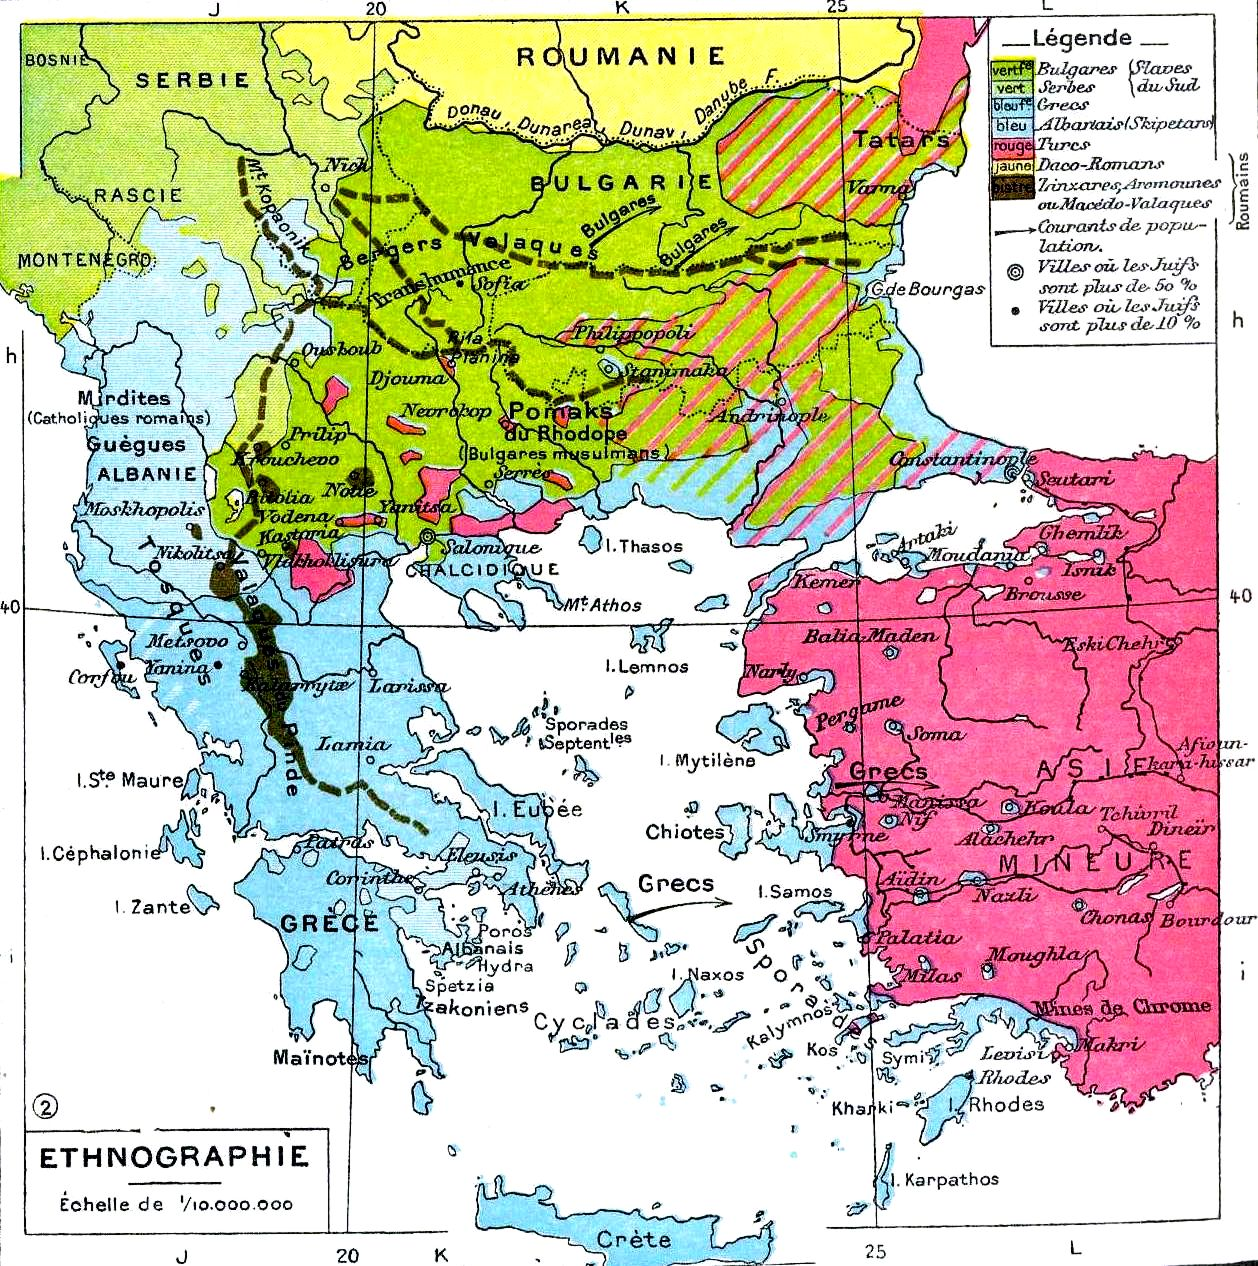 Macedonia region  Wikipedia